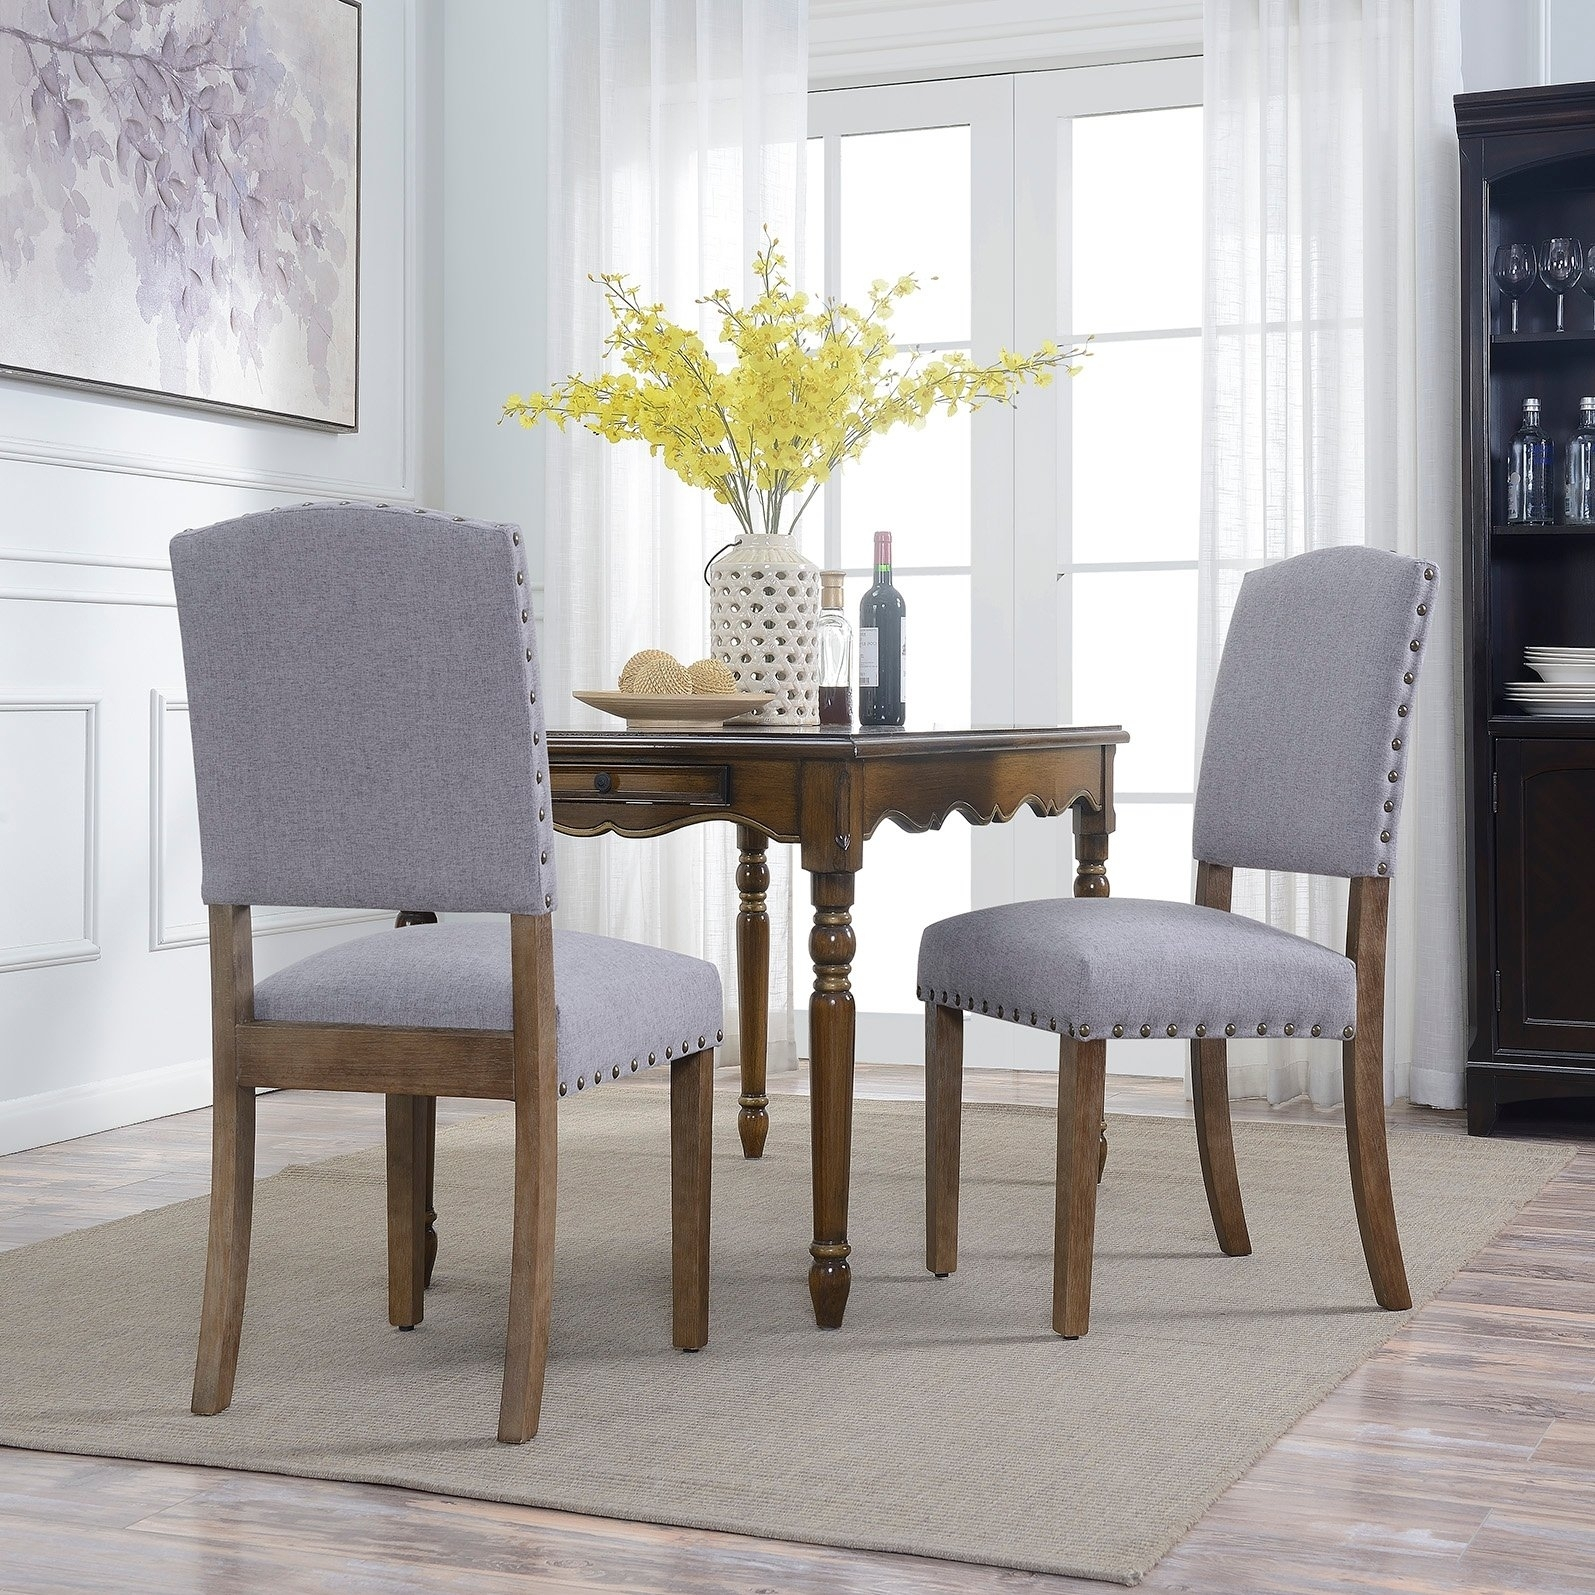 Shop Belleze Contemporary Classic Dining Chair Set Of (2) Linen With Most Recently Released Caira Black 7 Piece Dining Sets With Upholstered Side Chairs (Image 16 of 20)